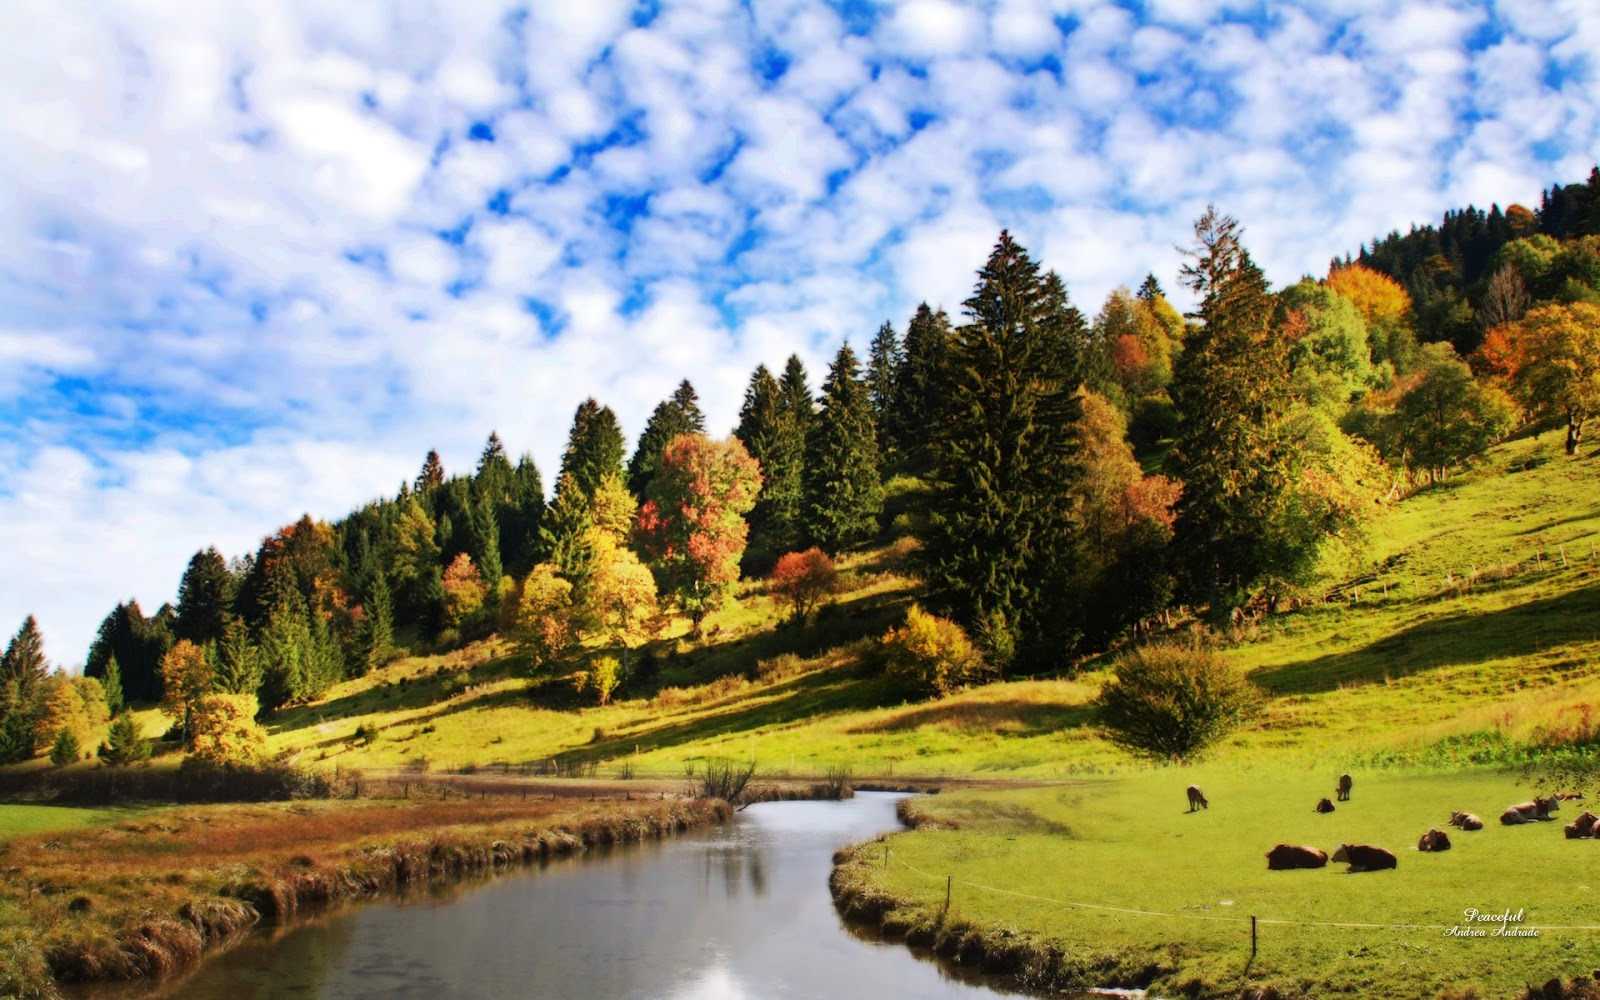 3d hd wallpapers beautiful nature hd wallpapers 1080p - Most popular hd wallpapers 1080p ...